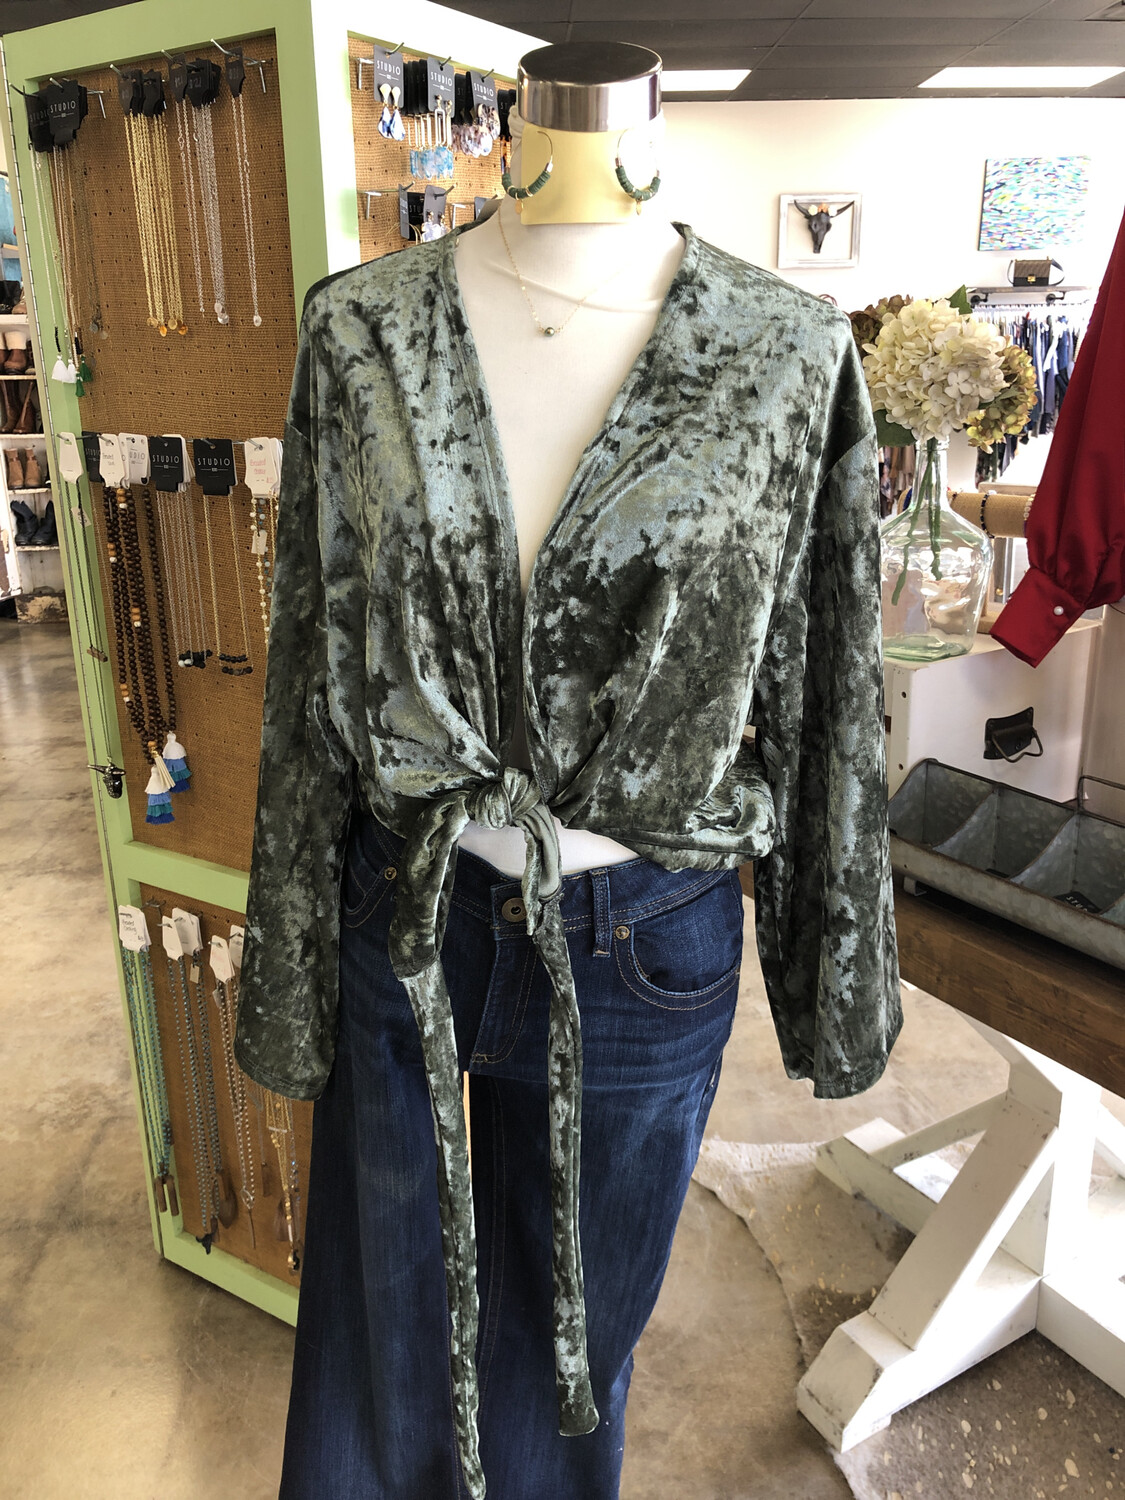 Molly Green Green Crushed Velvet Tie Front Top - L